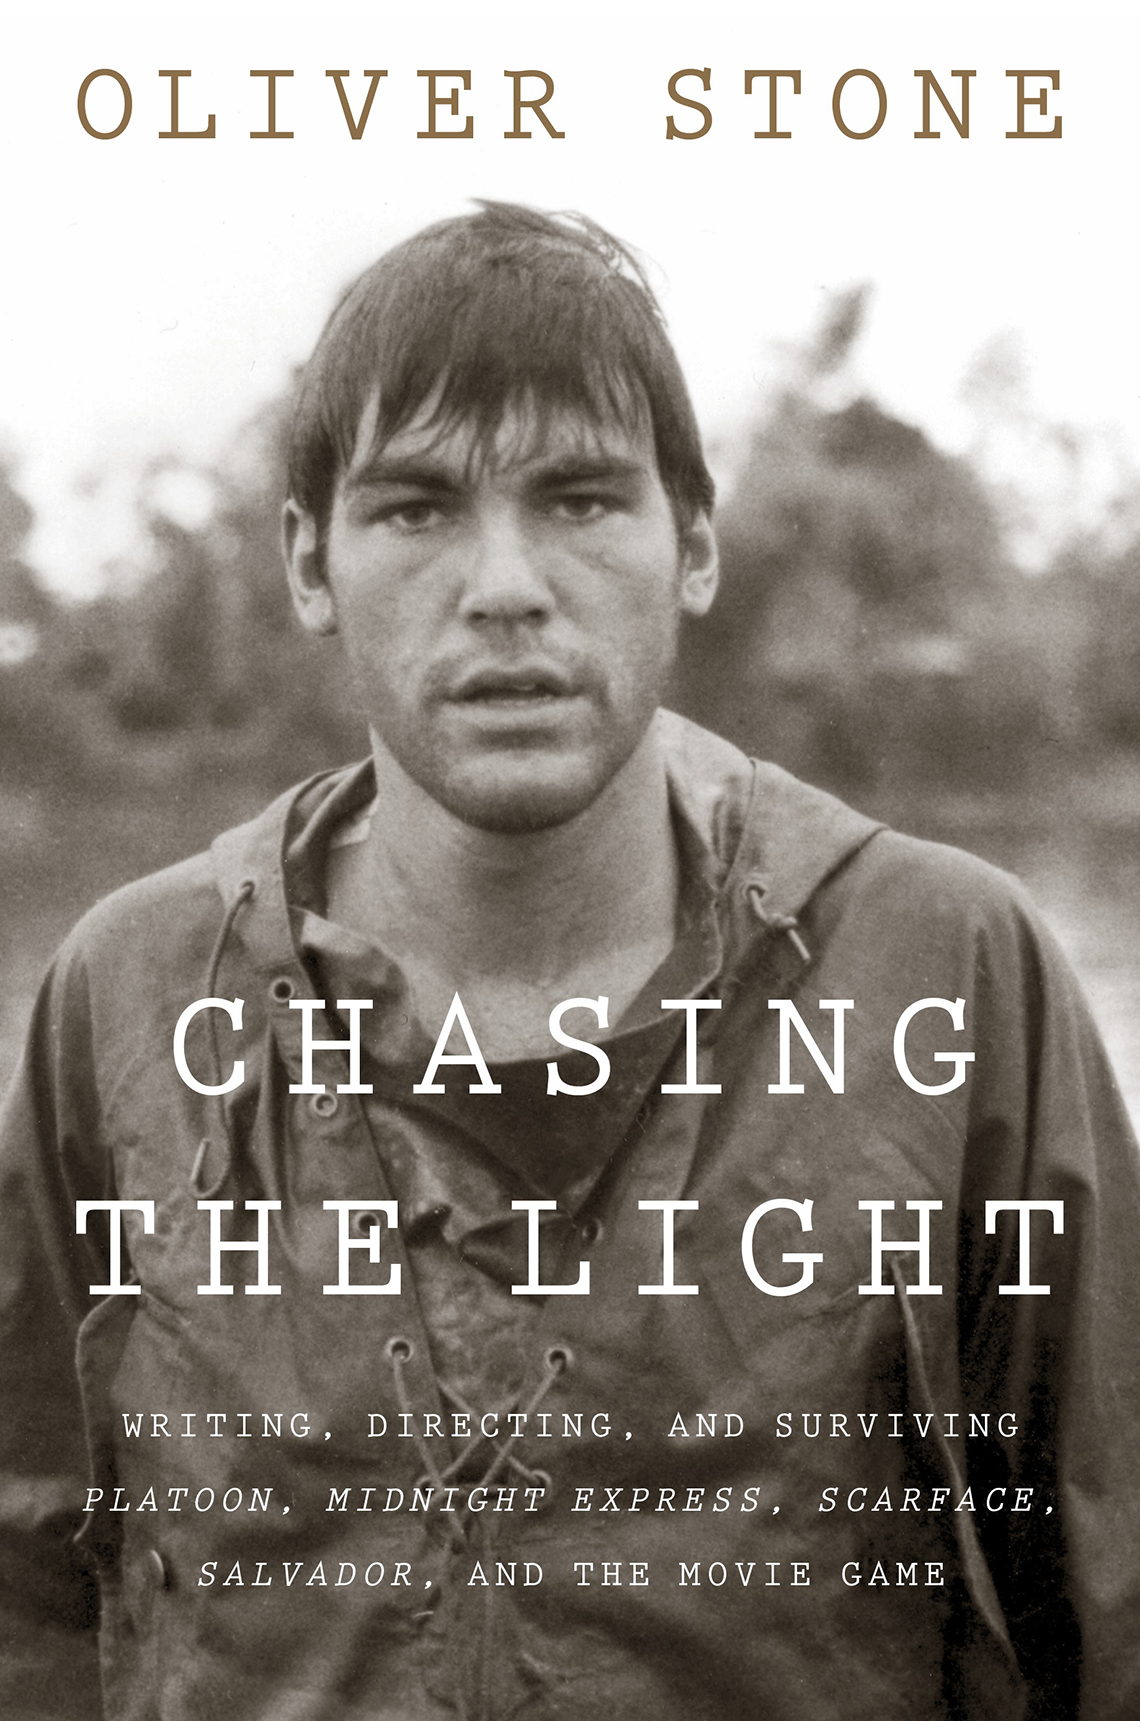 The book cover of the Oliver Stone memoir Chasing the Light